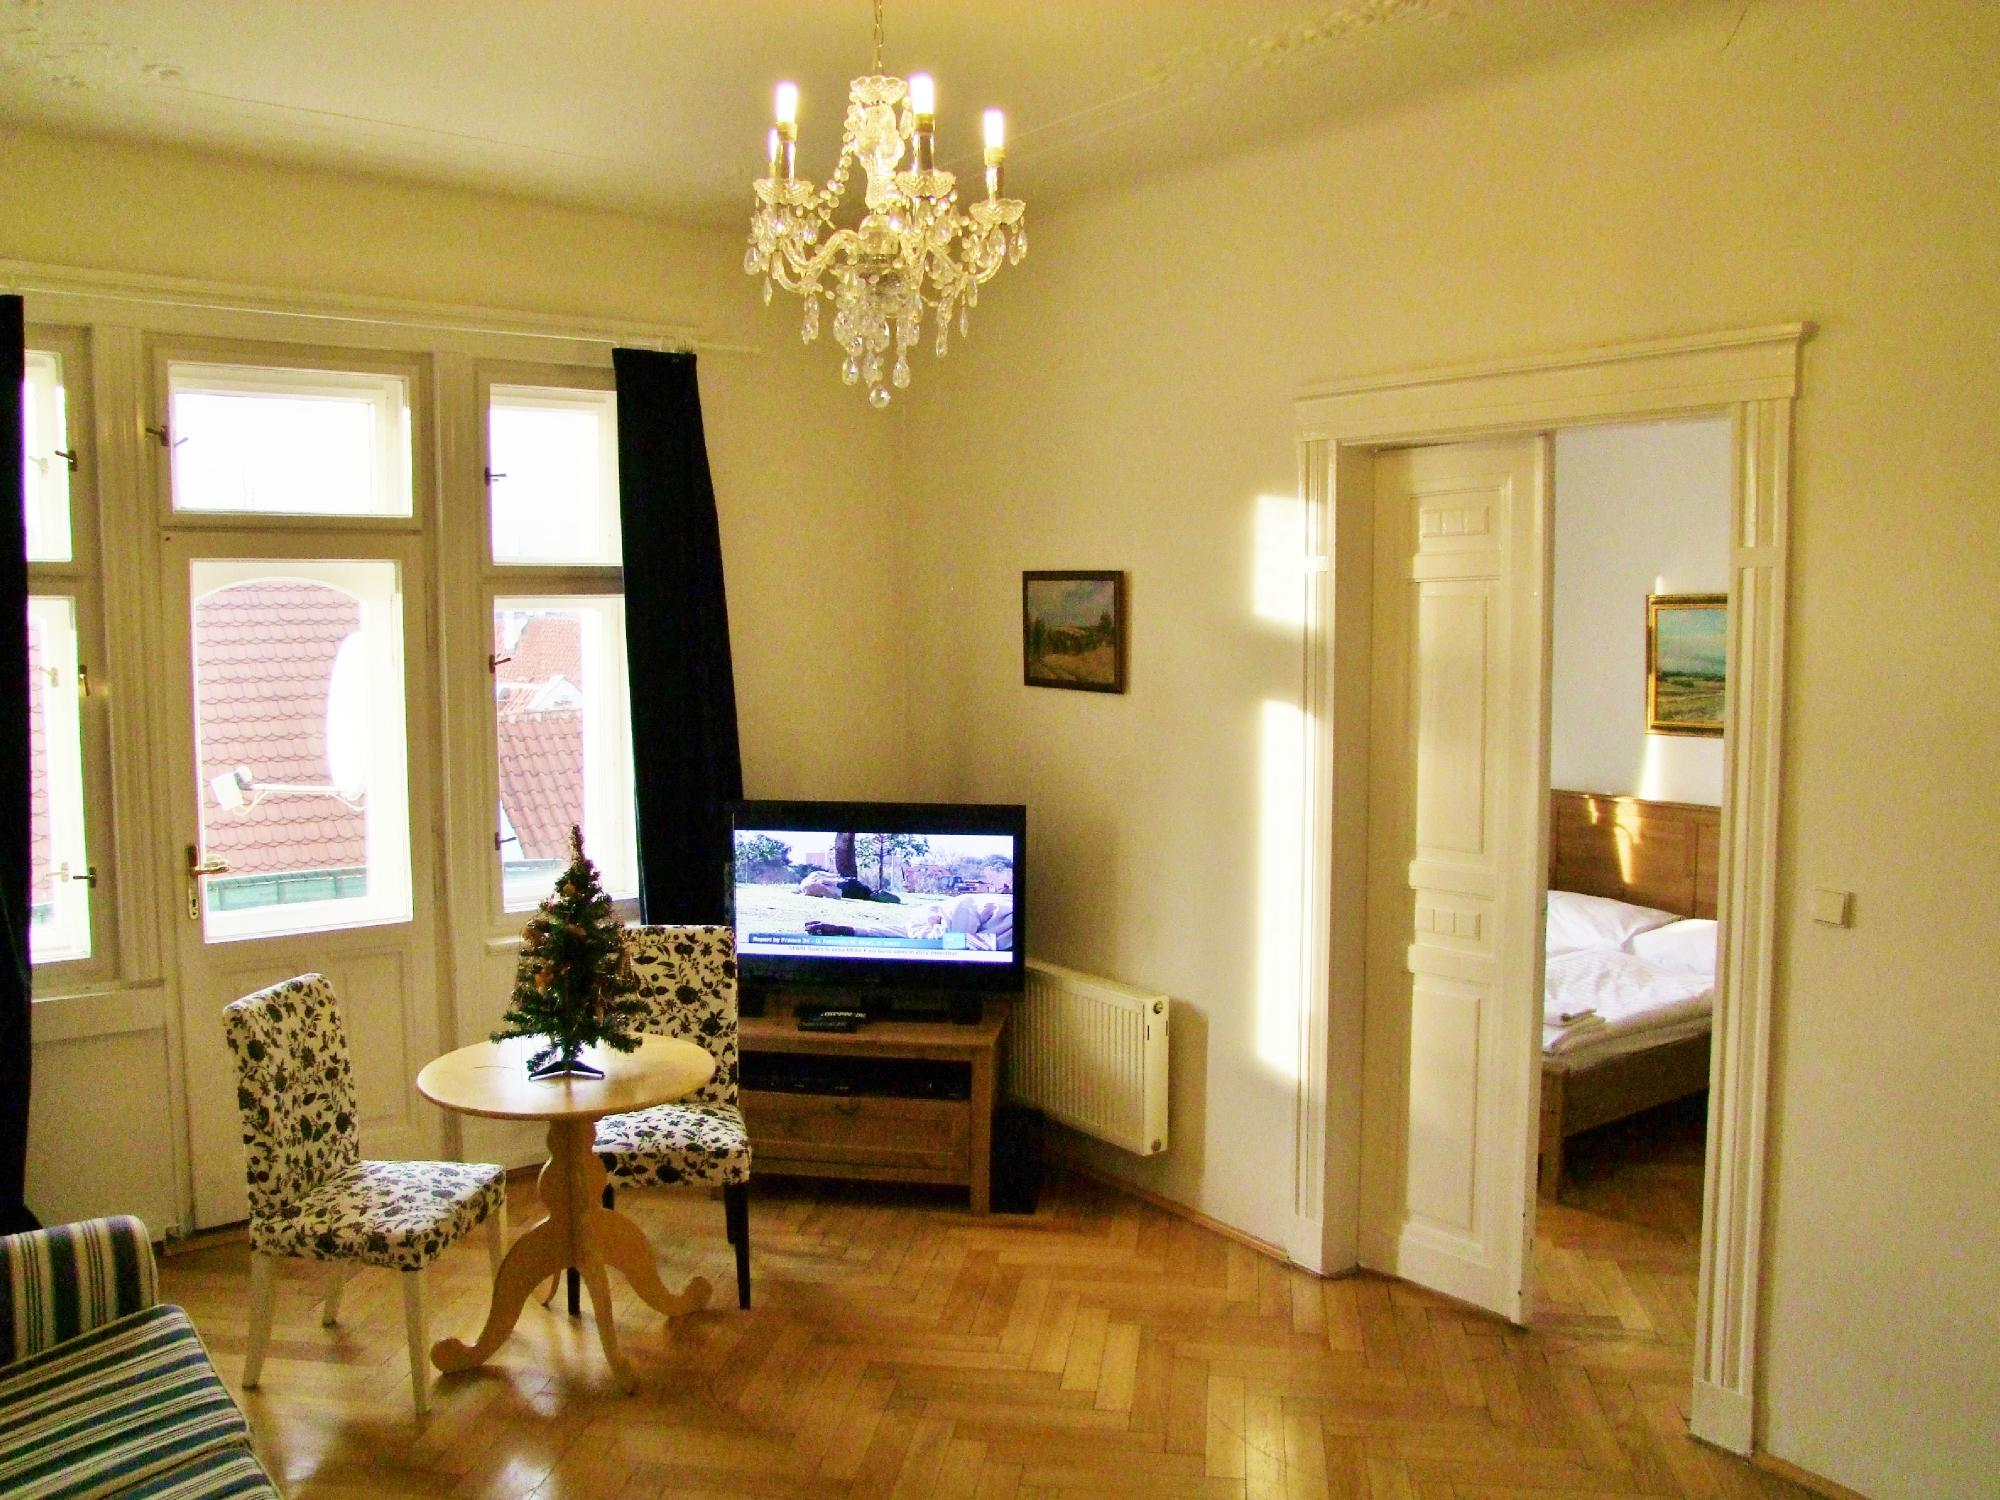 Apartment Apt Old Town Square, Prague, Czech Republic - Booking.com